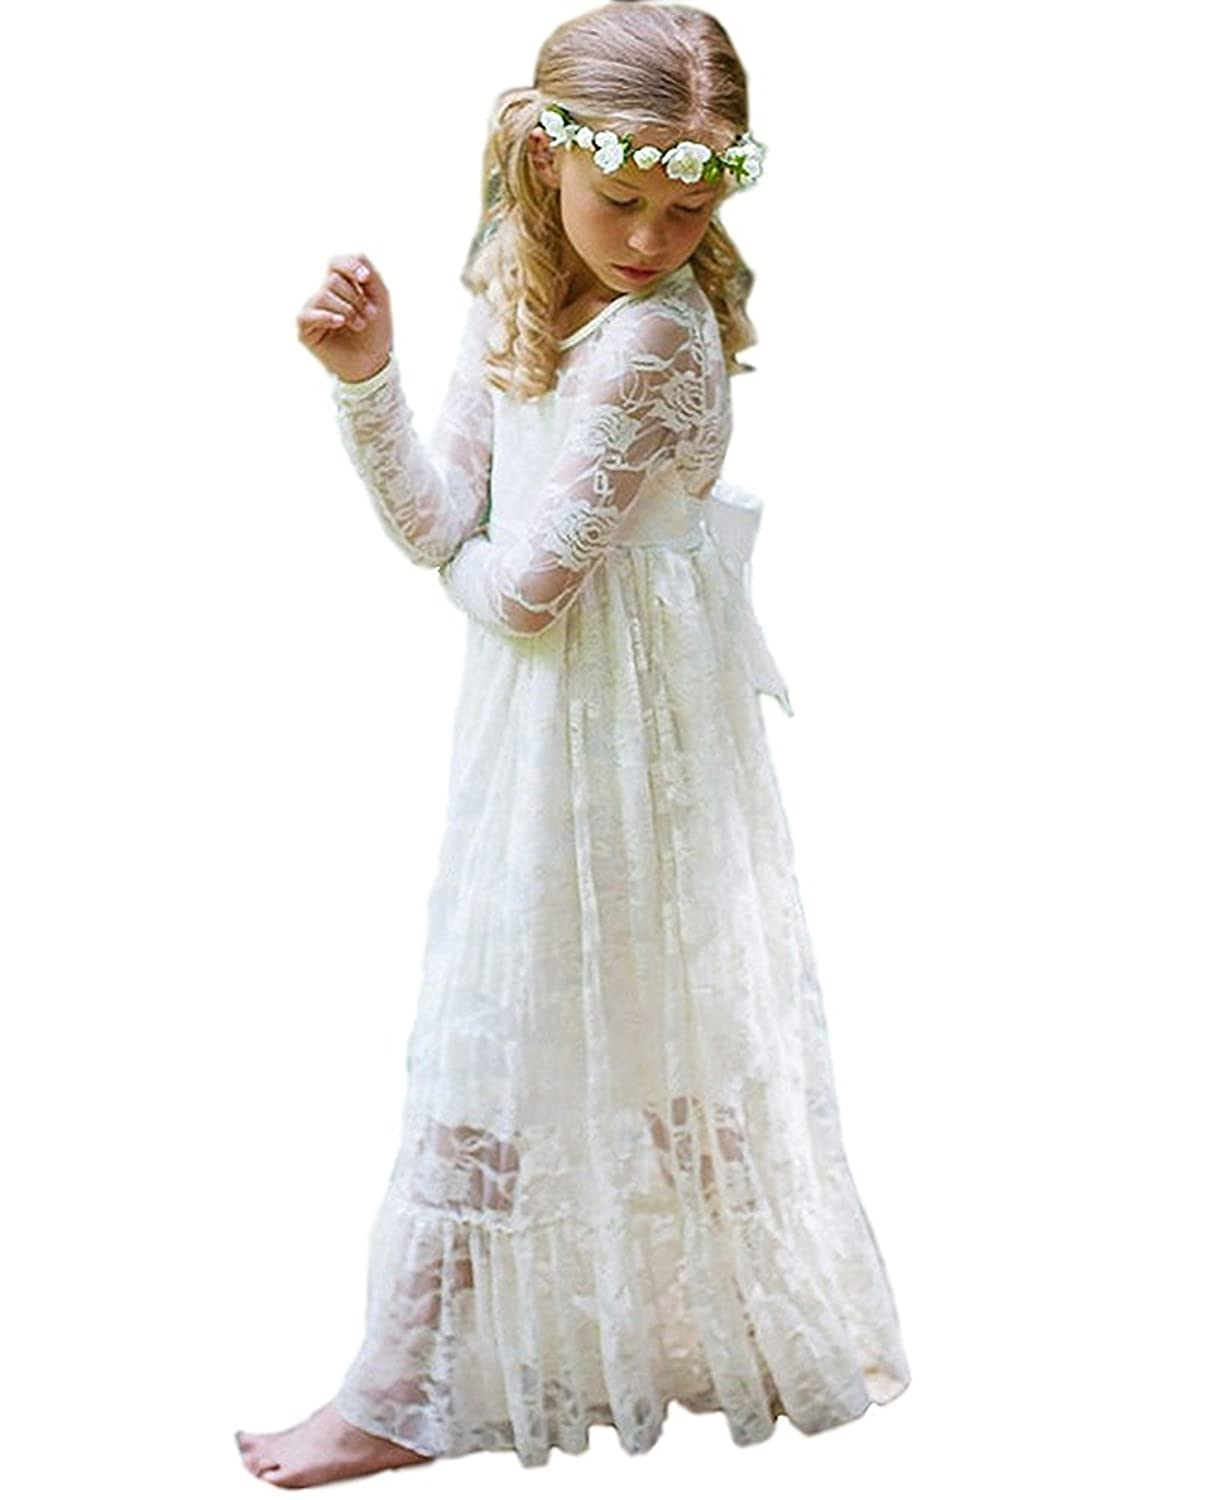 a2d89f24213 Amazon.com  yuanzhuoshangp Holy White Ivory Lace Boho Rustic Flower Girl  Dress For Pageant Age 2-14  Clothing